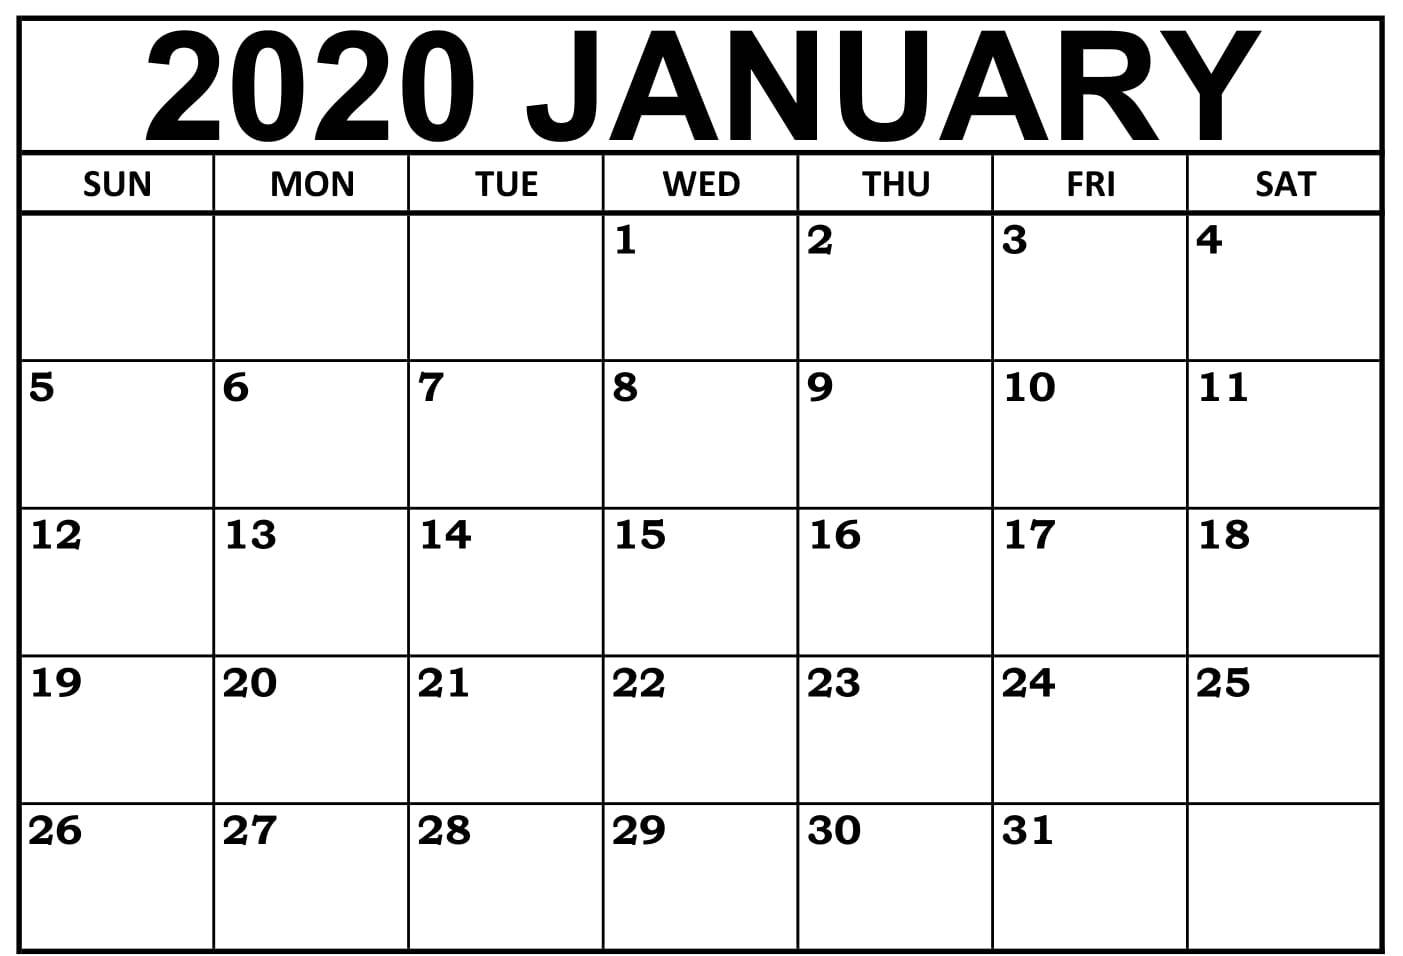 January 2020 Calendar Pdf, Word, Excel Printable Templates